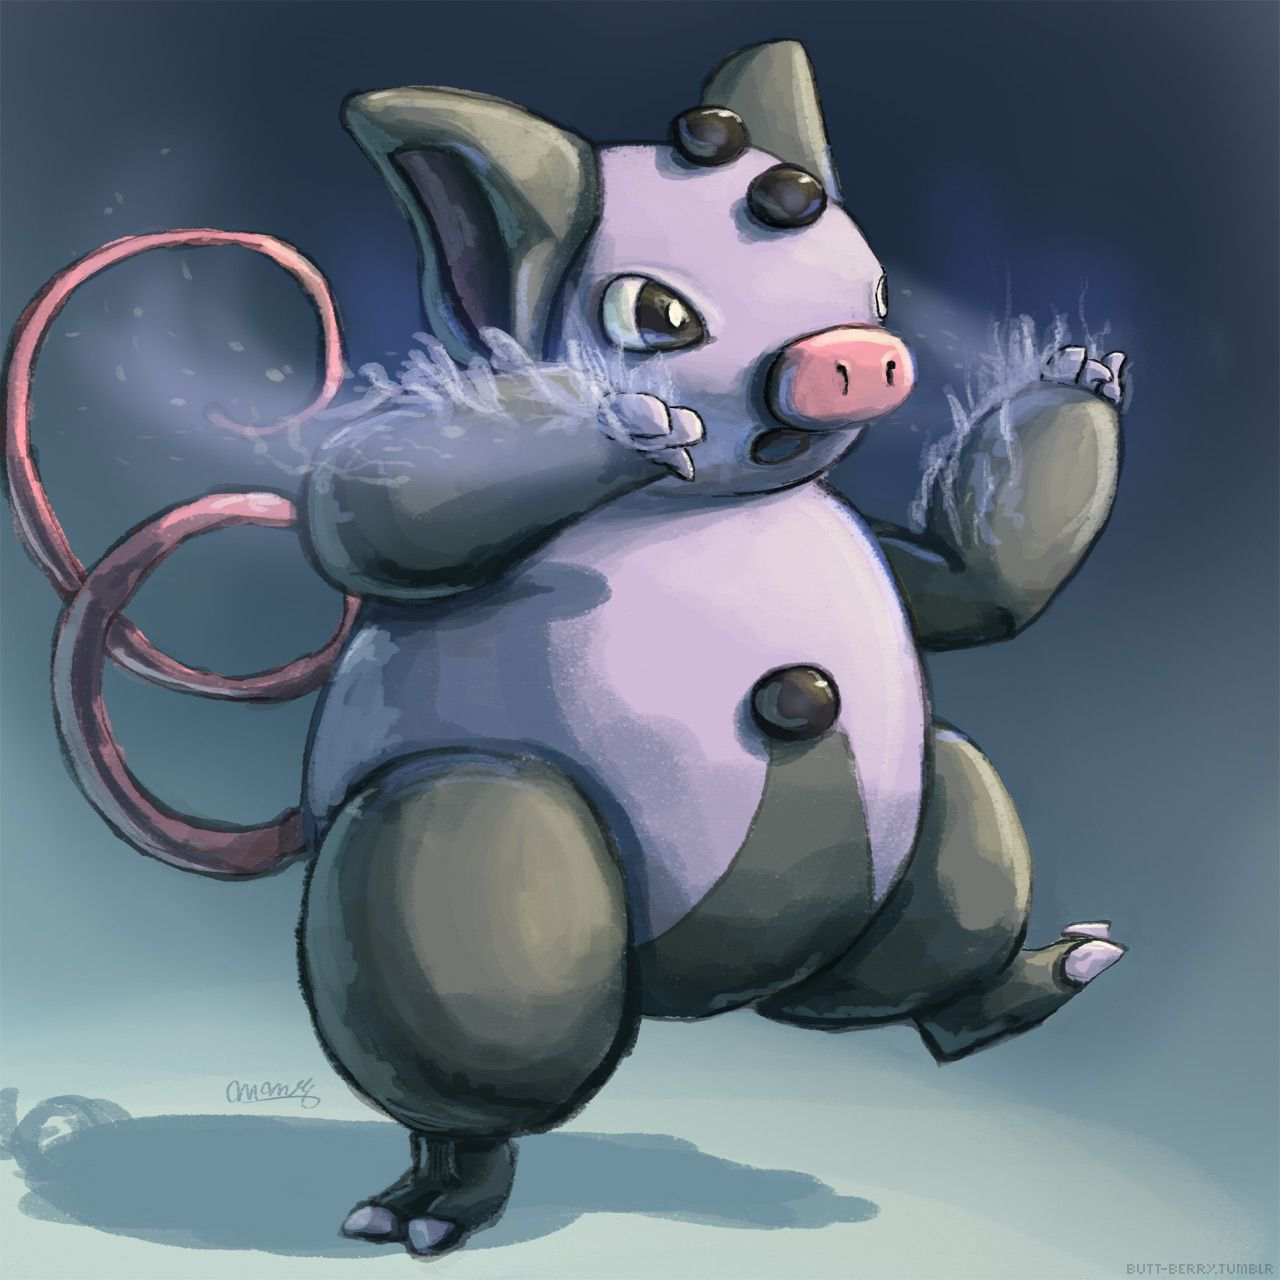 Grumpig (With images) | Pokemon drawings, Pokemon, Pokemon art